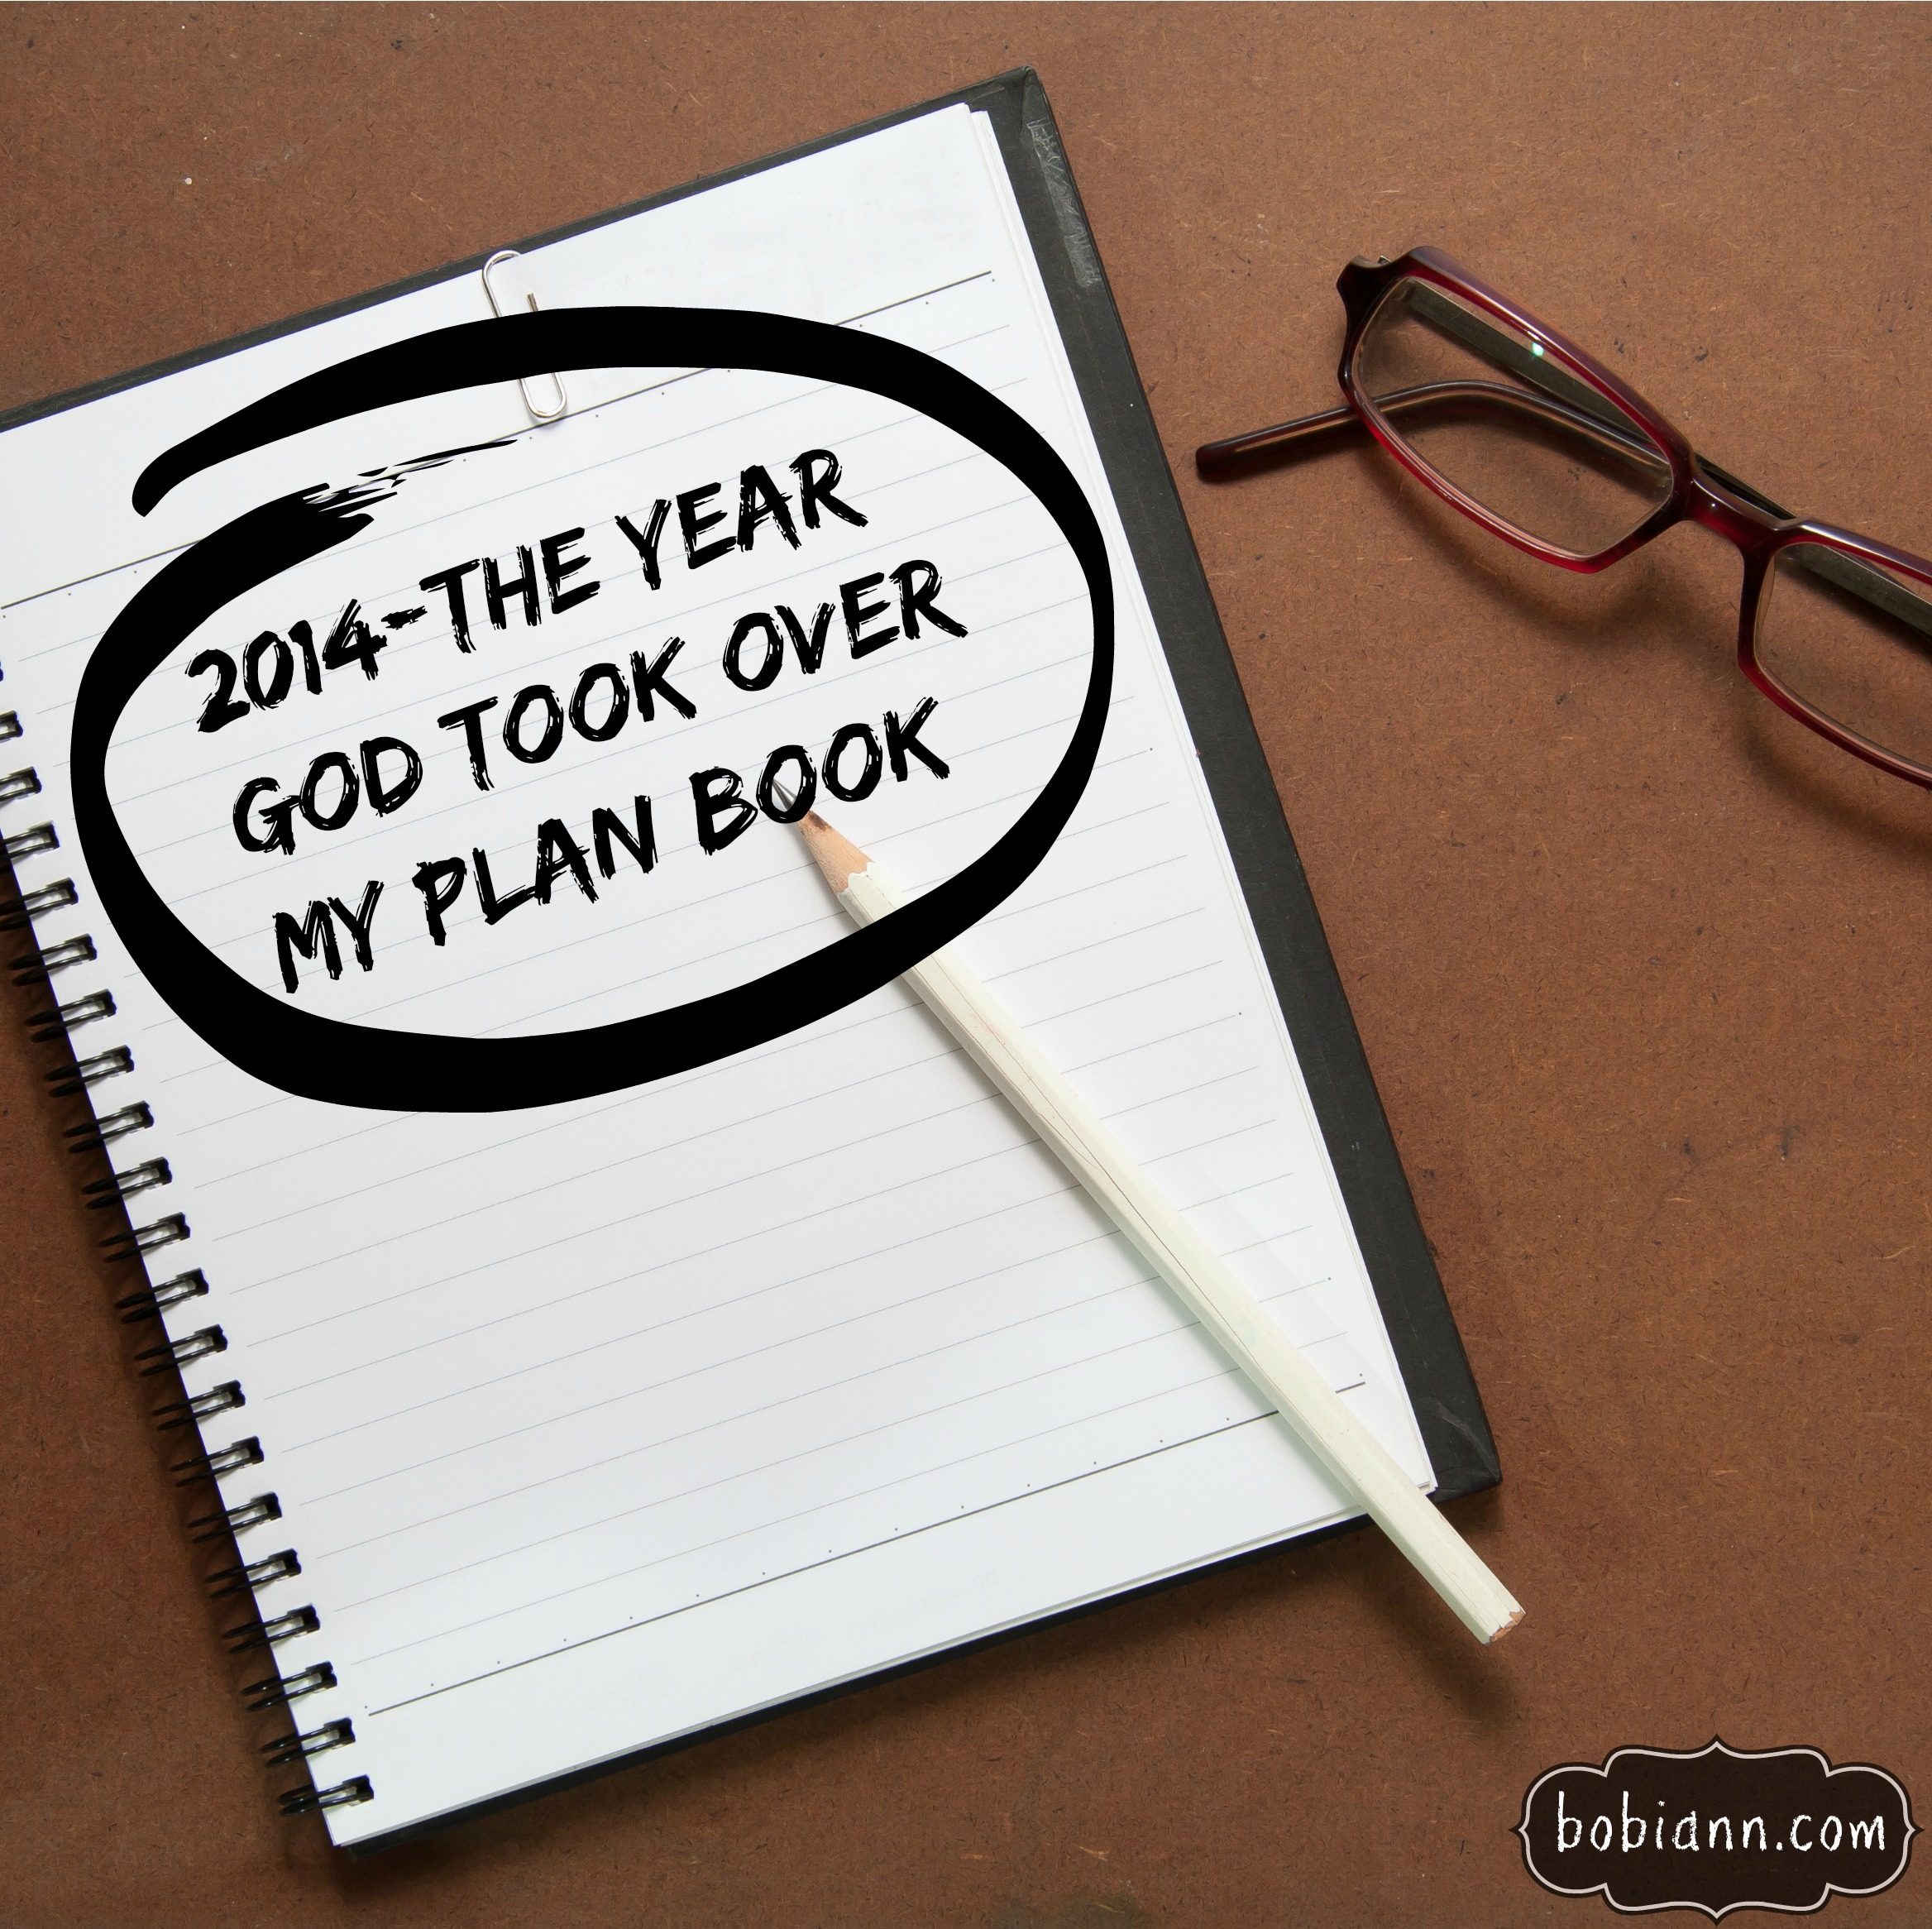 2014 The Year God Took Over My Plan Book